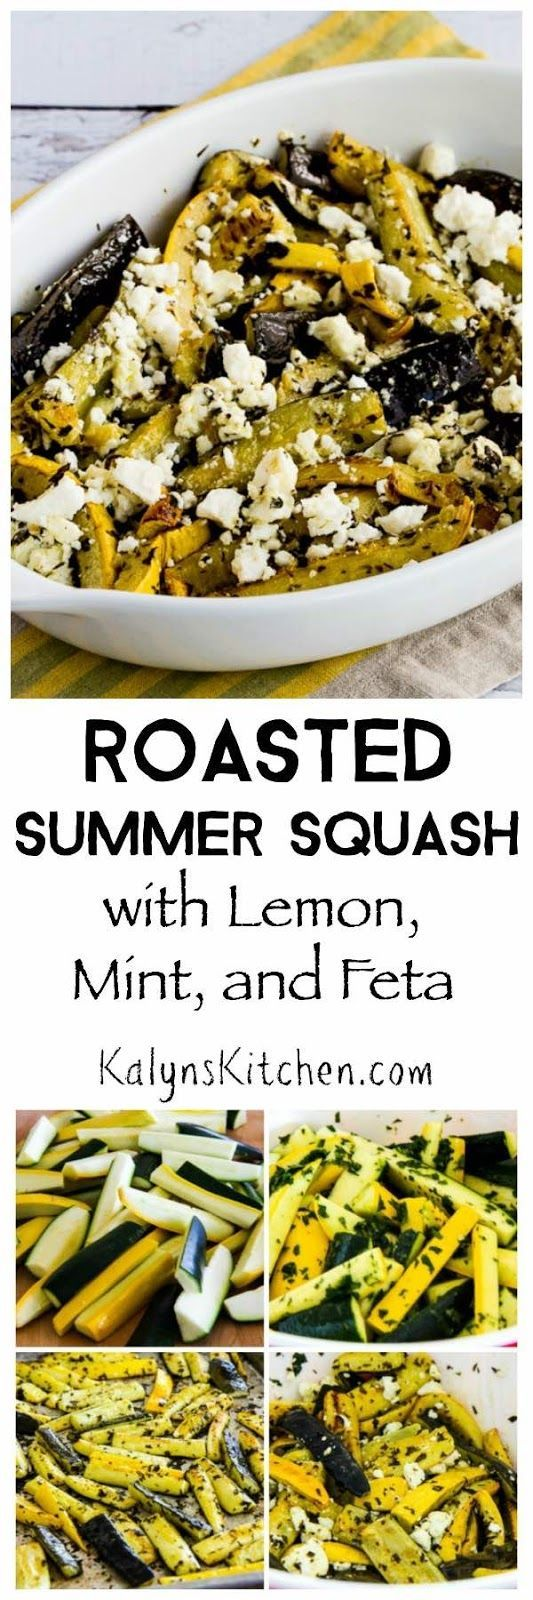 Grab some fresh mint and make this Roasted Summer Squash with Lemon, Mint, and…